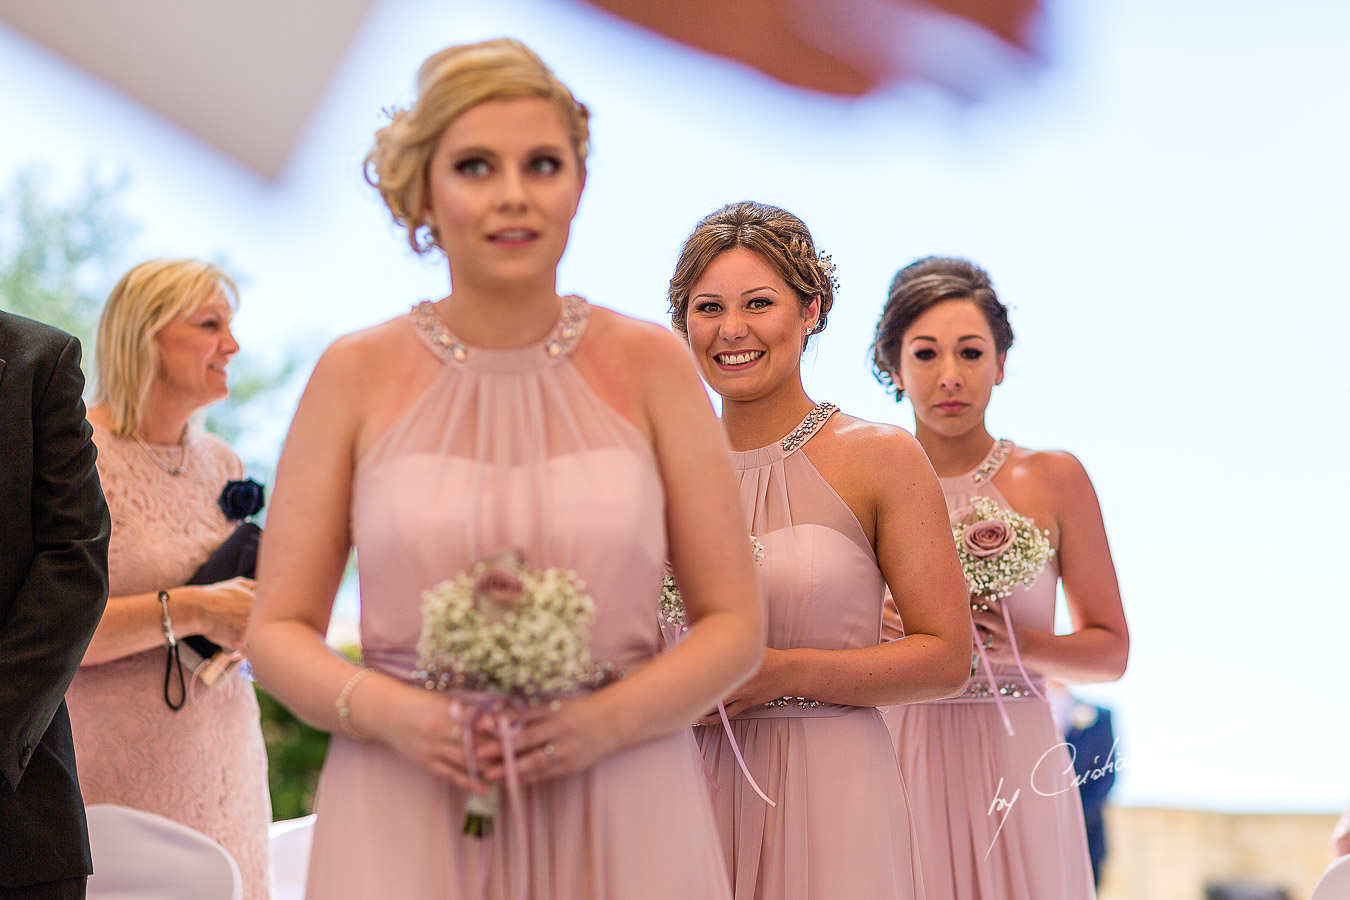 The moment when the bridesmaids arrive at the wedding ceremony at Aphrodite Hills Resort in Cyprus, captured by photographer Cristian Dascalu.